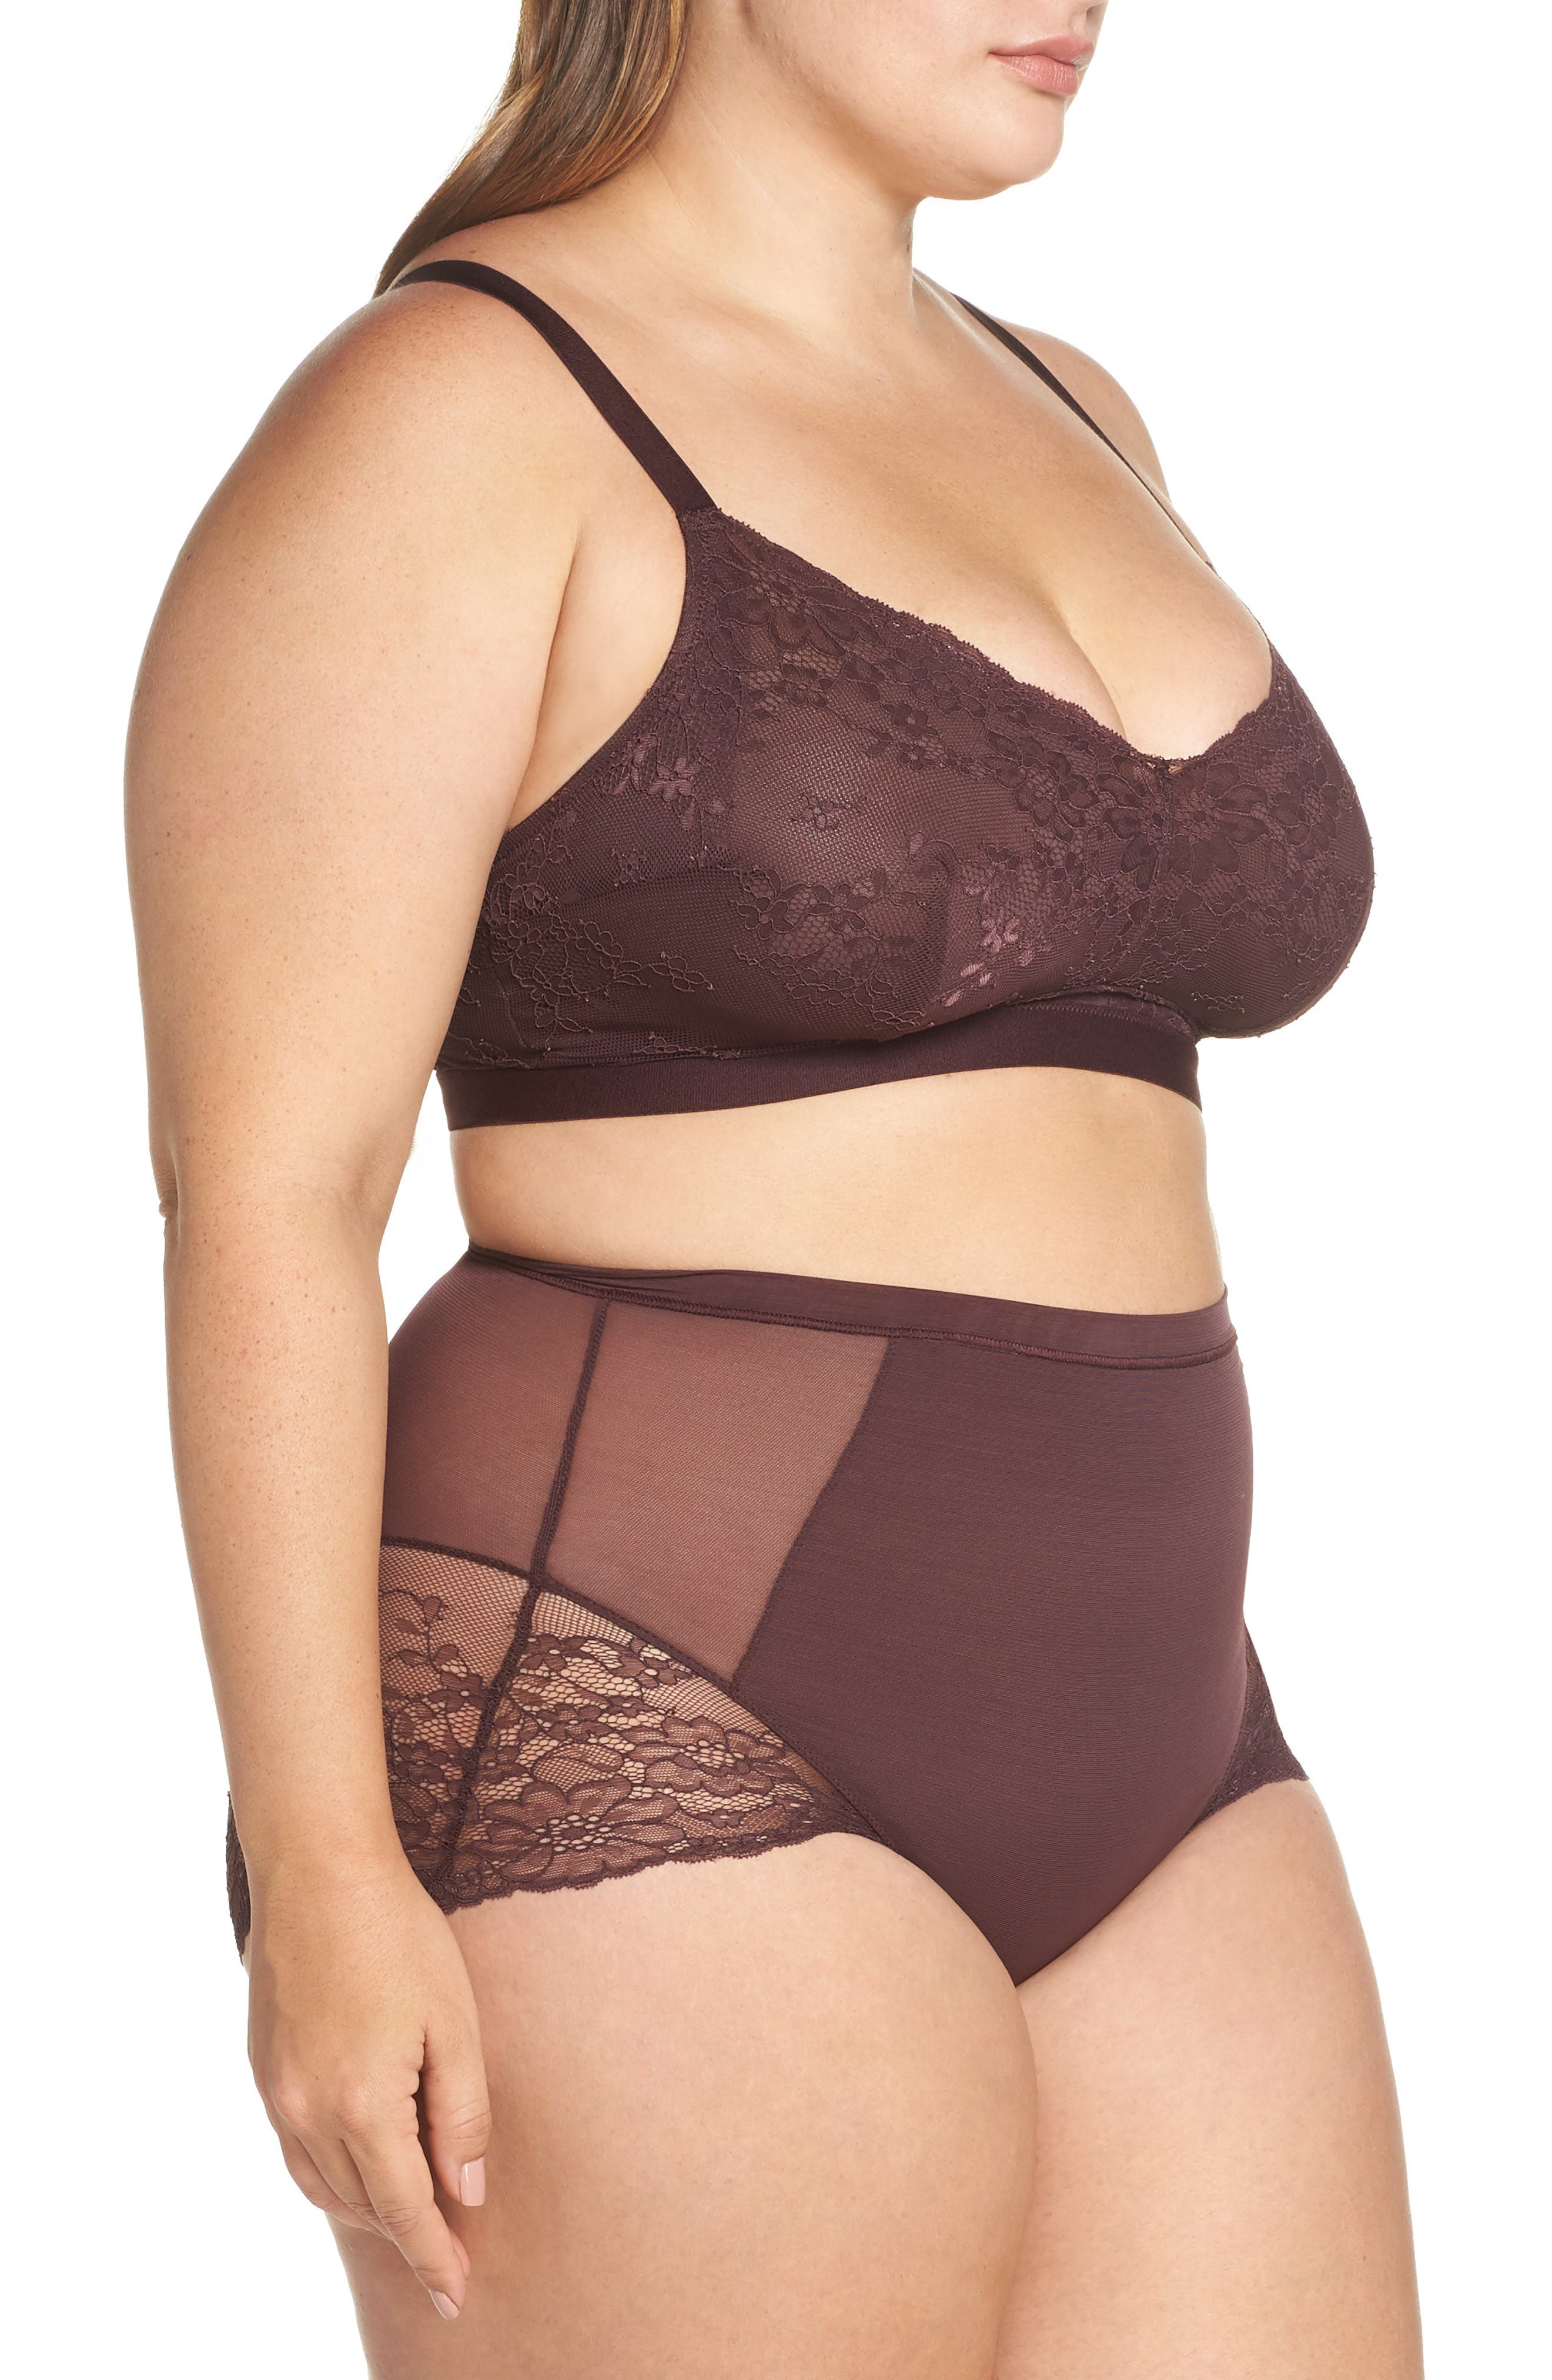 Spotlight On Lace Bralette,                             Alternate thumbnail 11, color,                             GARNET